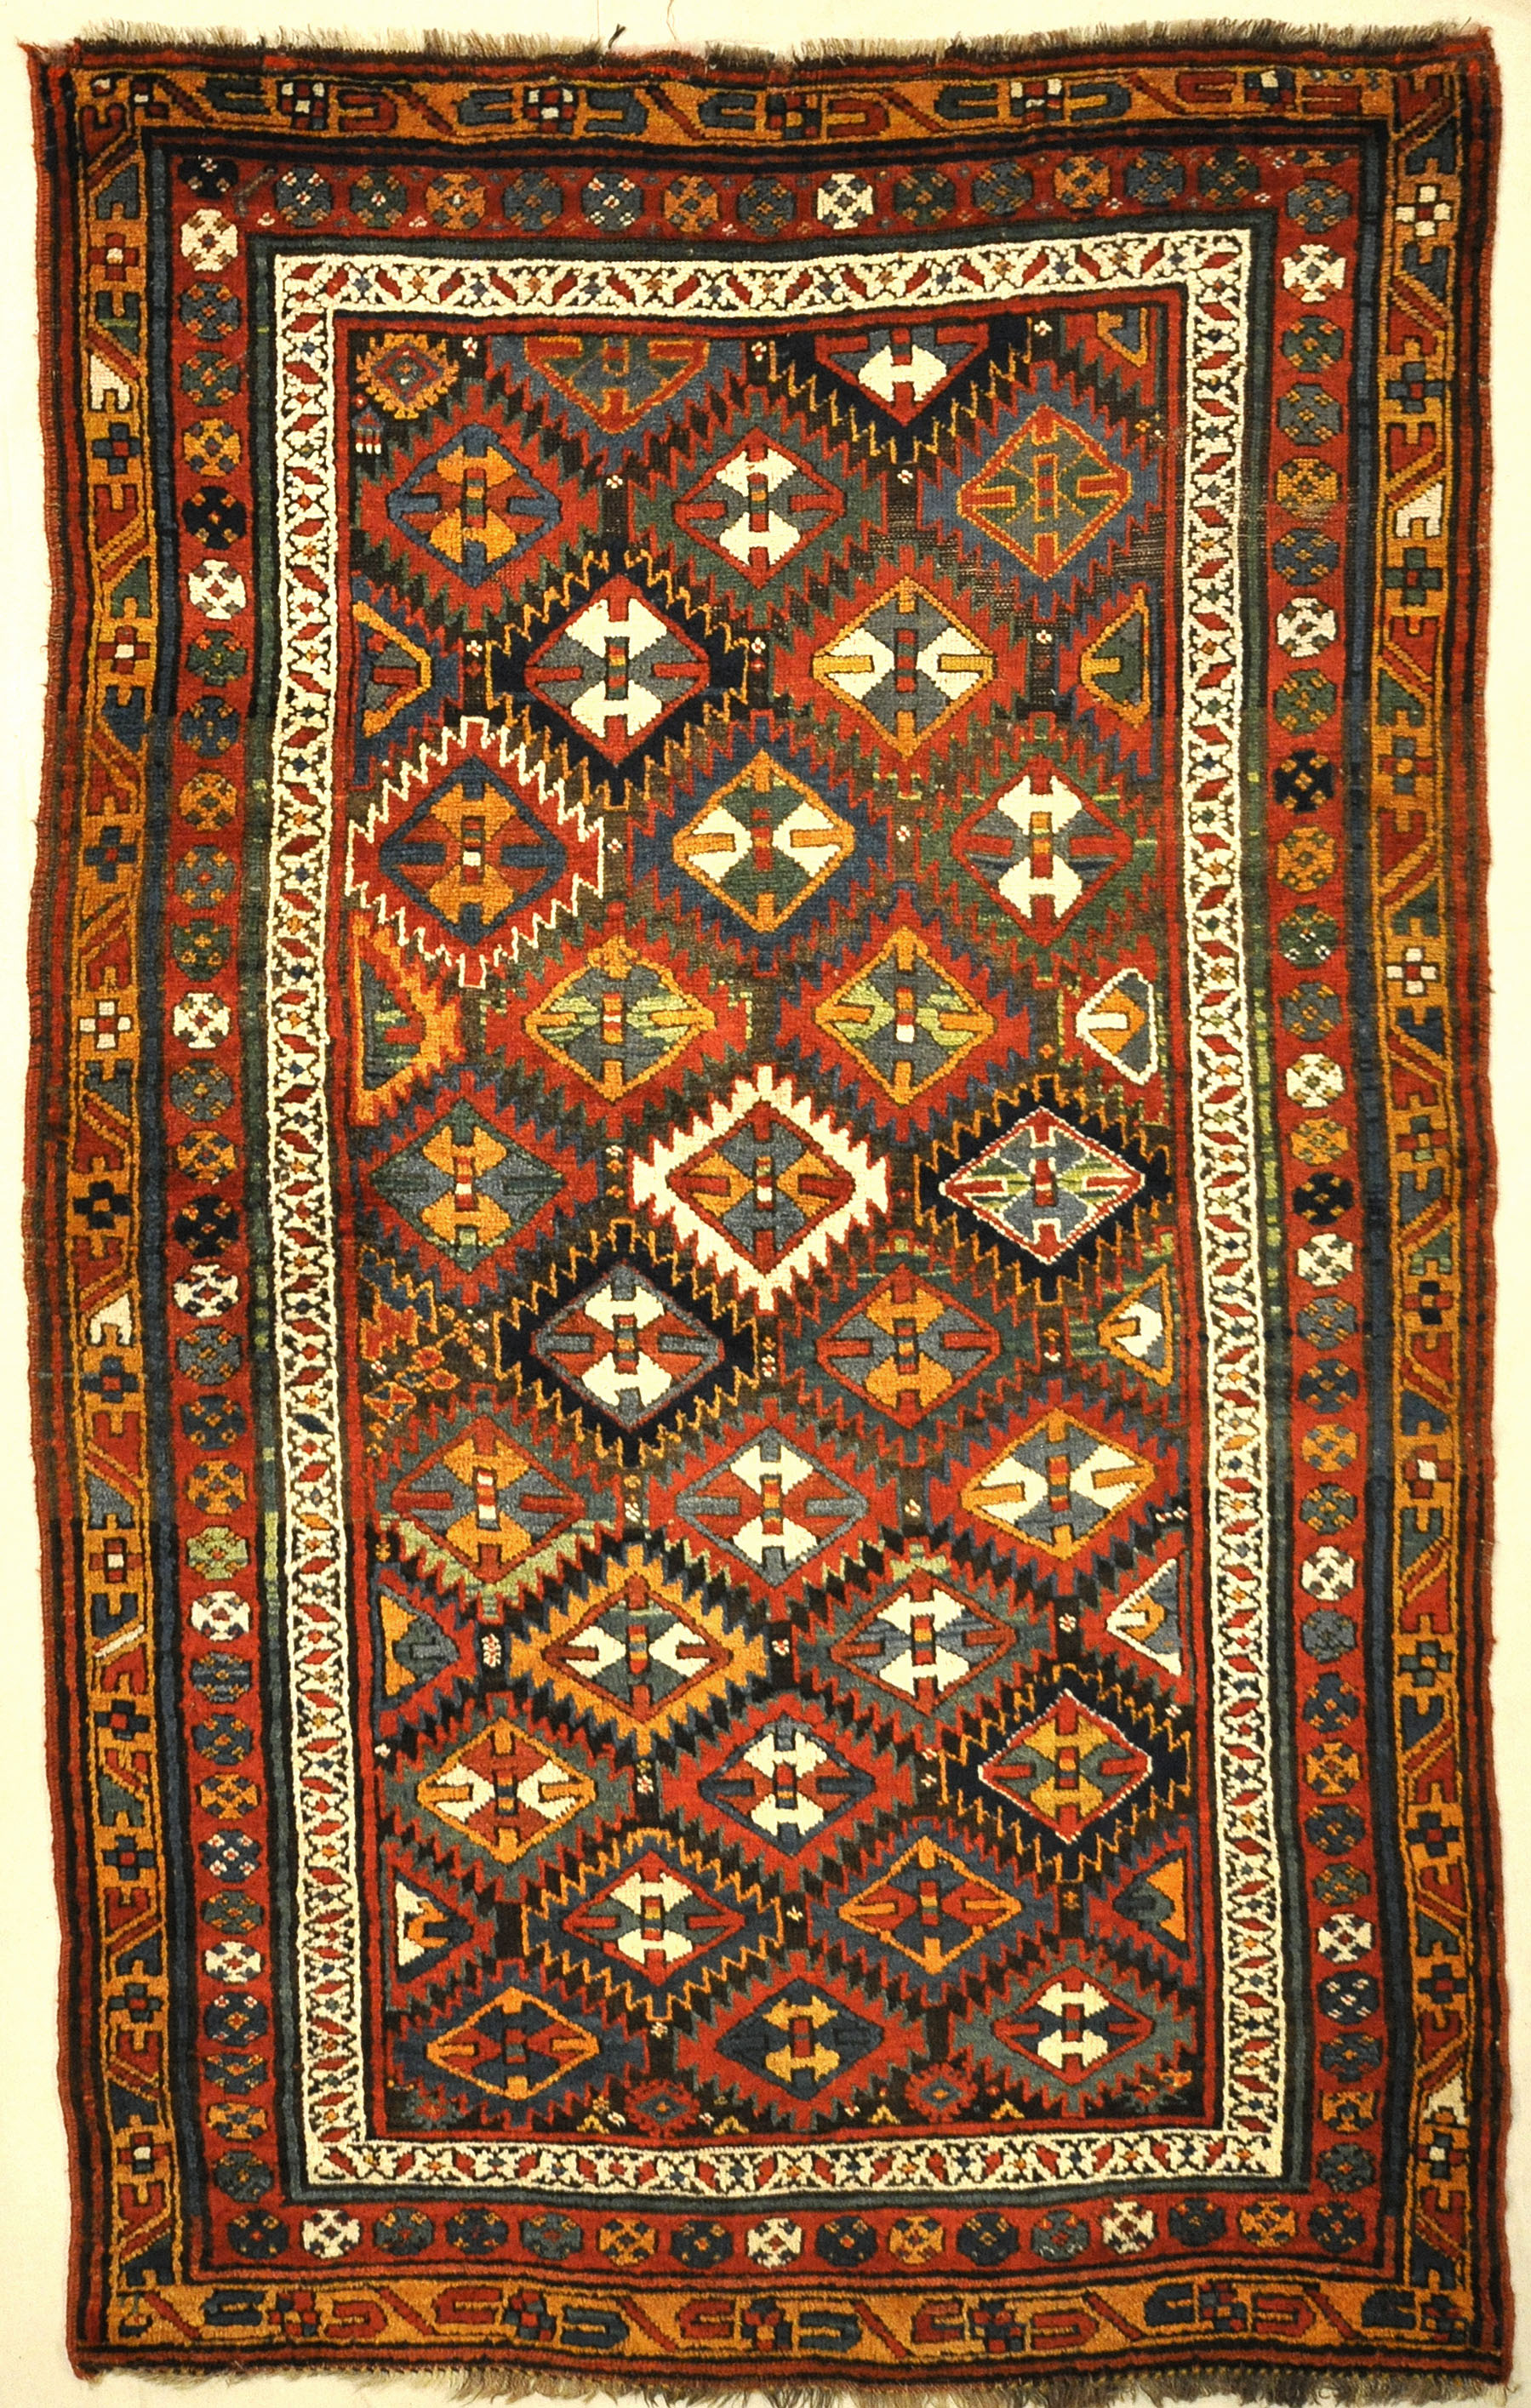 Rare Antique Shasavan Sojbolagh Rug. A piece of genuine authentic unique woven carpet art sold by the Santa Barbara Design Center, Rugs and More.